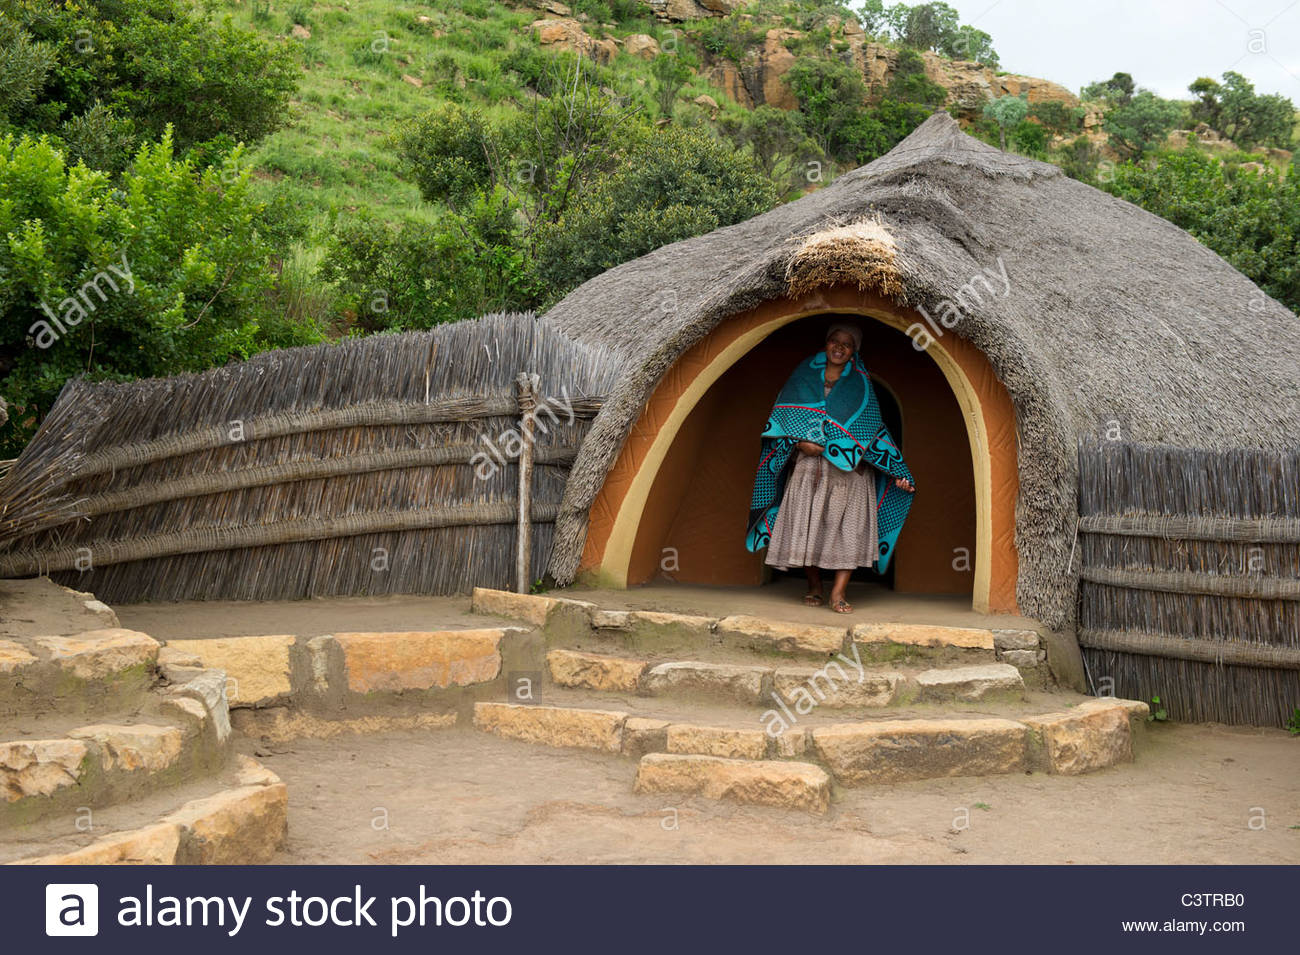 Basotho Women Stock Photos & Basotho Women Stock Images.